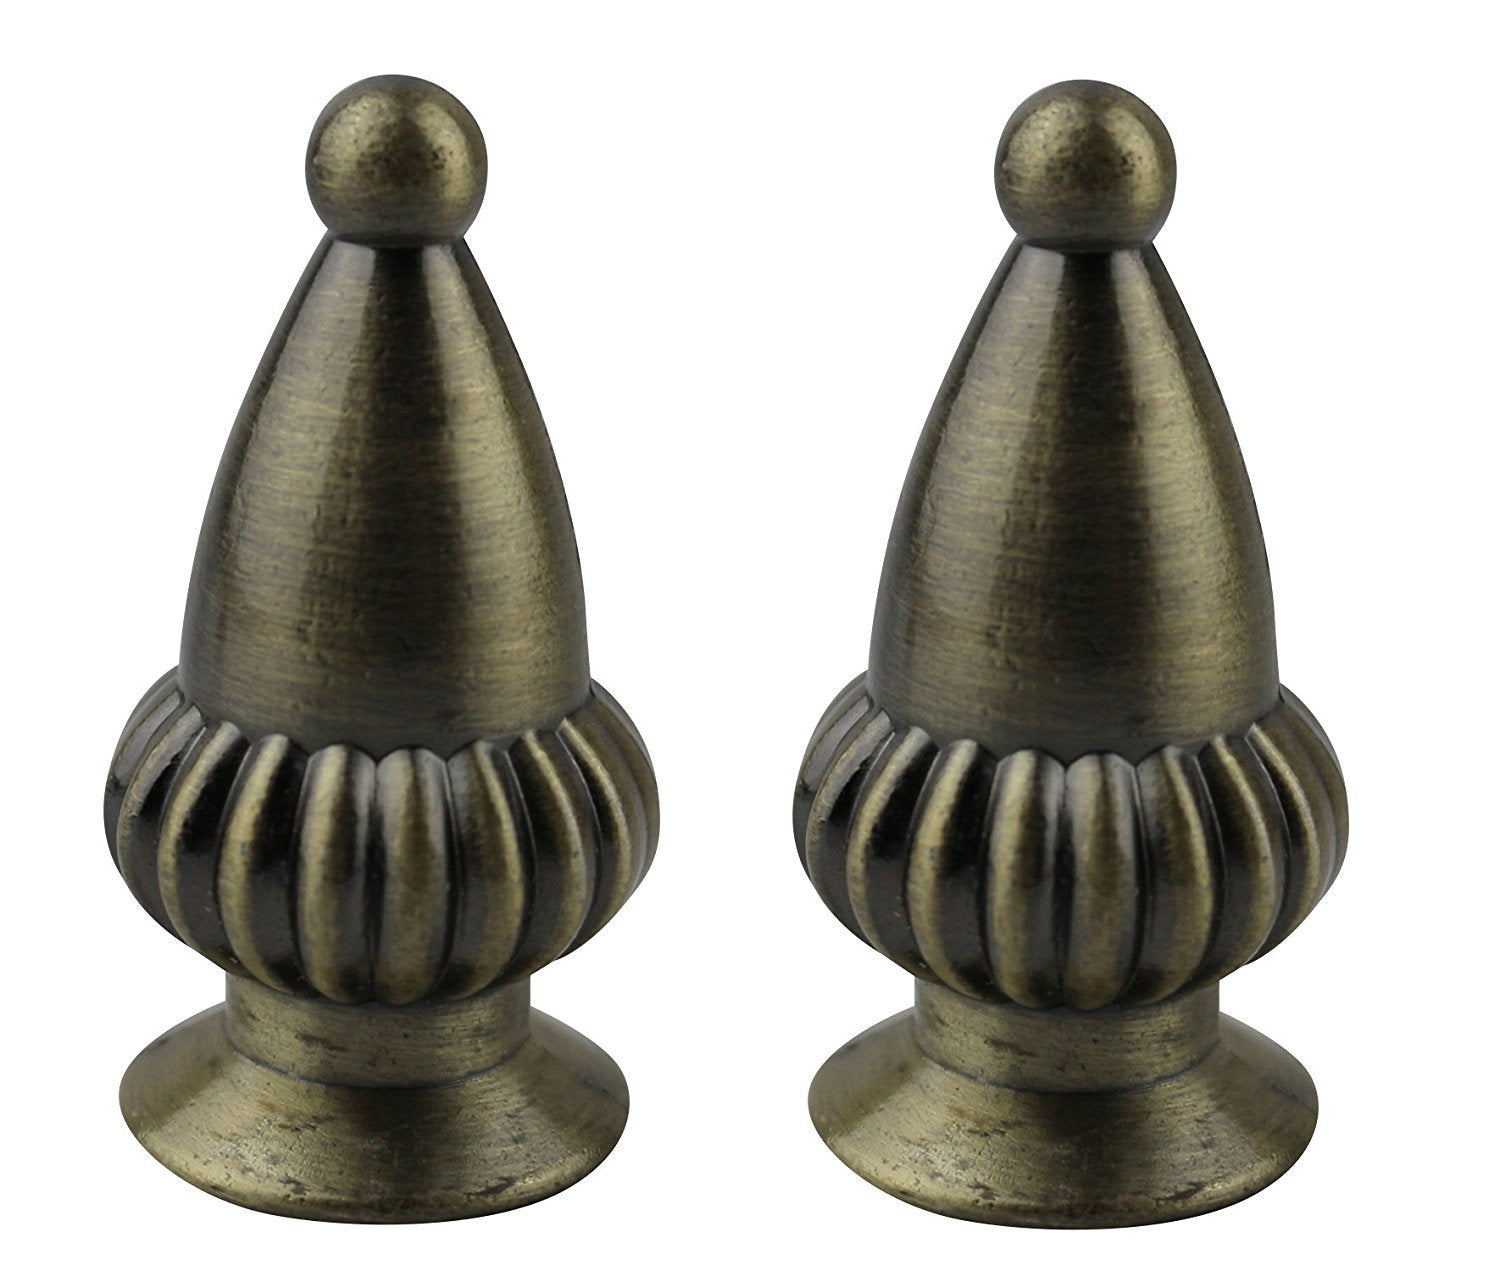 Acorn Lamp Finial, 1 7/8-inch Tall